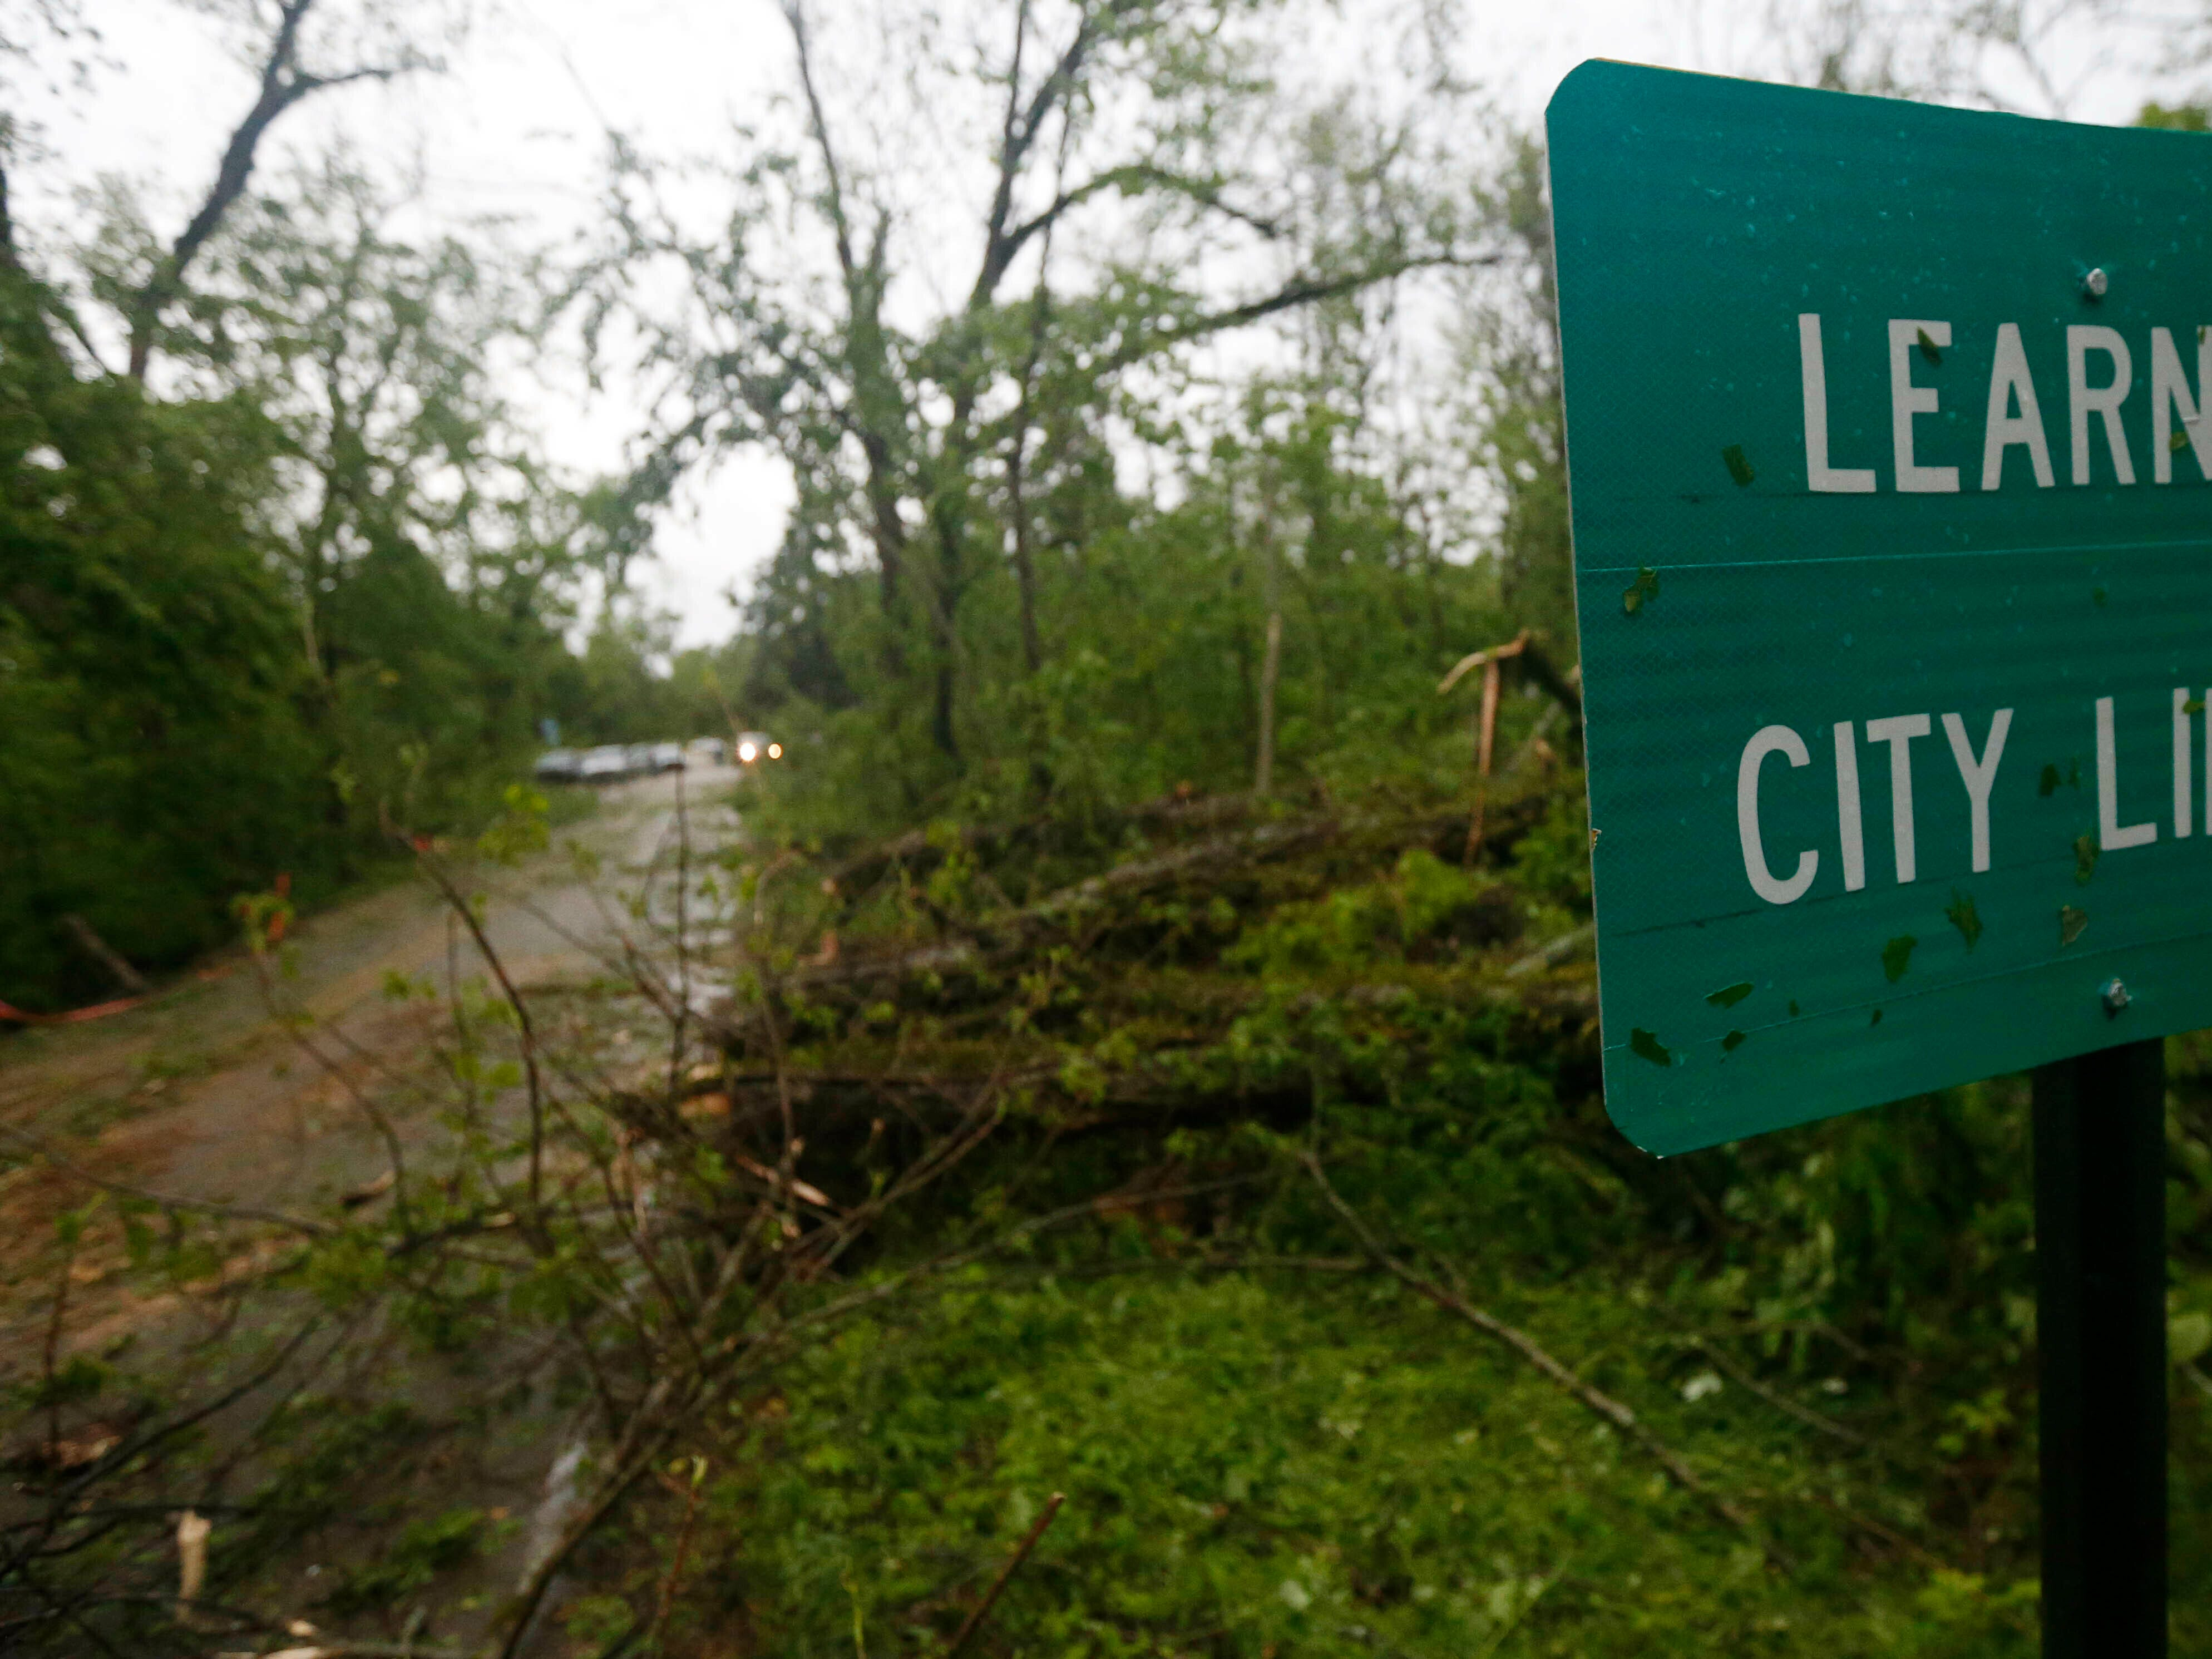 Fallen trees line the roads leading into the small community of Learned, Miss., Thursday, April 18, 2019. Several homes were damaged by fallen trees in the tree lined community. Strong storms again roared across the South on Thursday, topping trees and leaving more than 100,000 people without power across Mississippi, Louisiana and Texas.